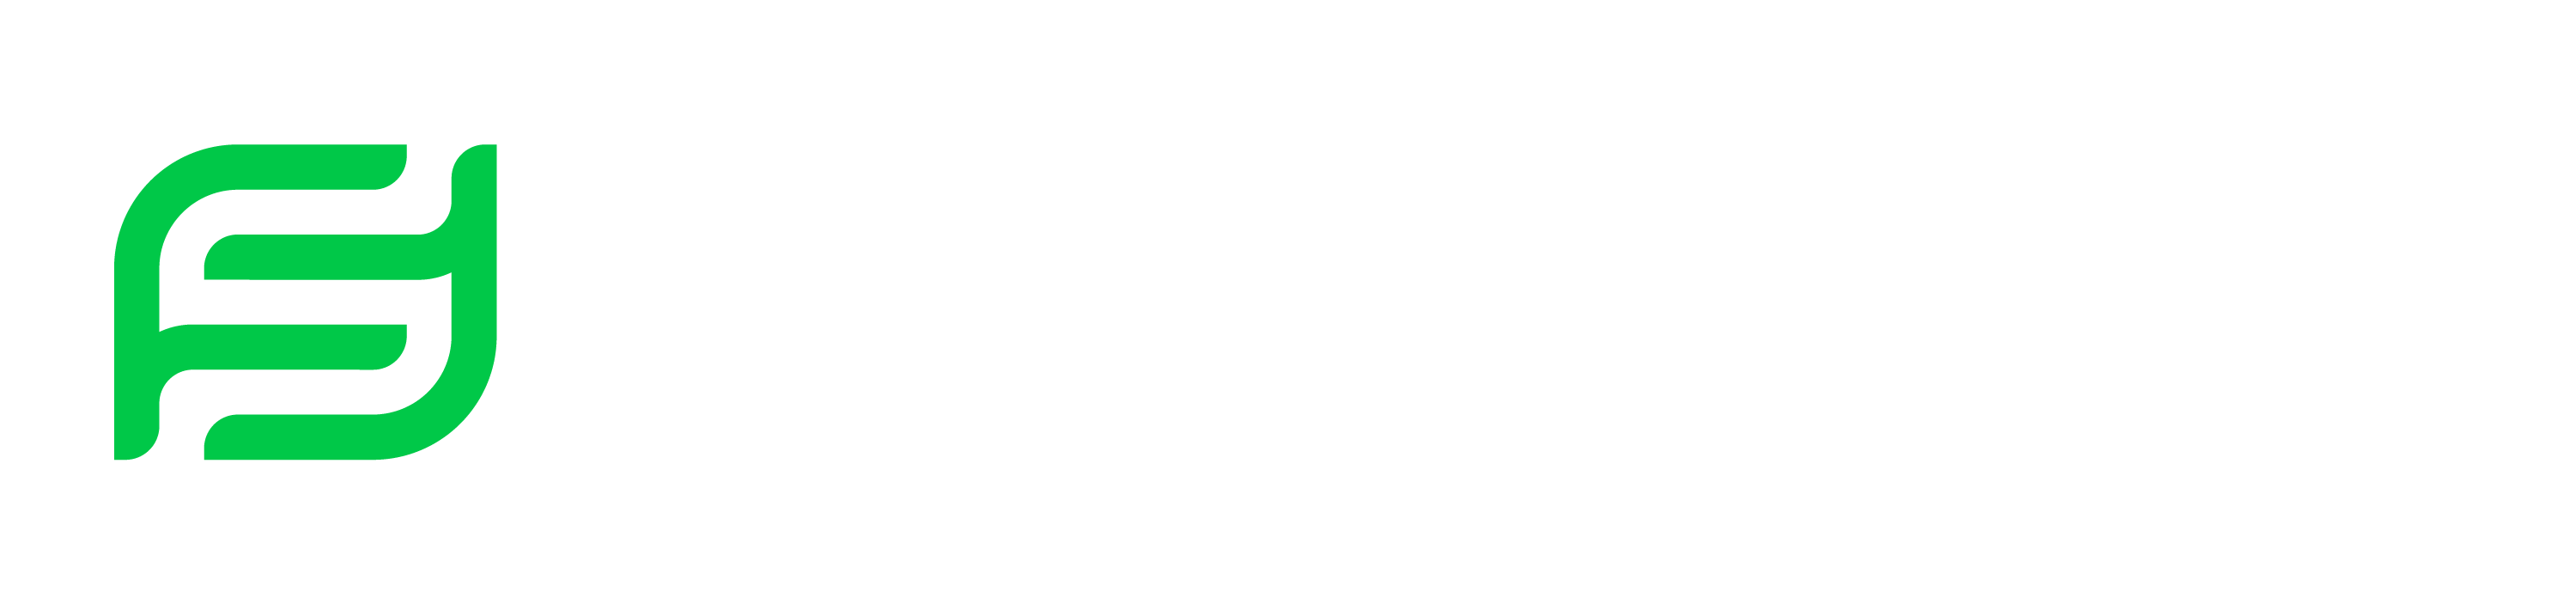 Fusion Sport Help Documentation